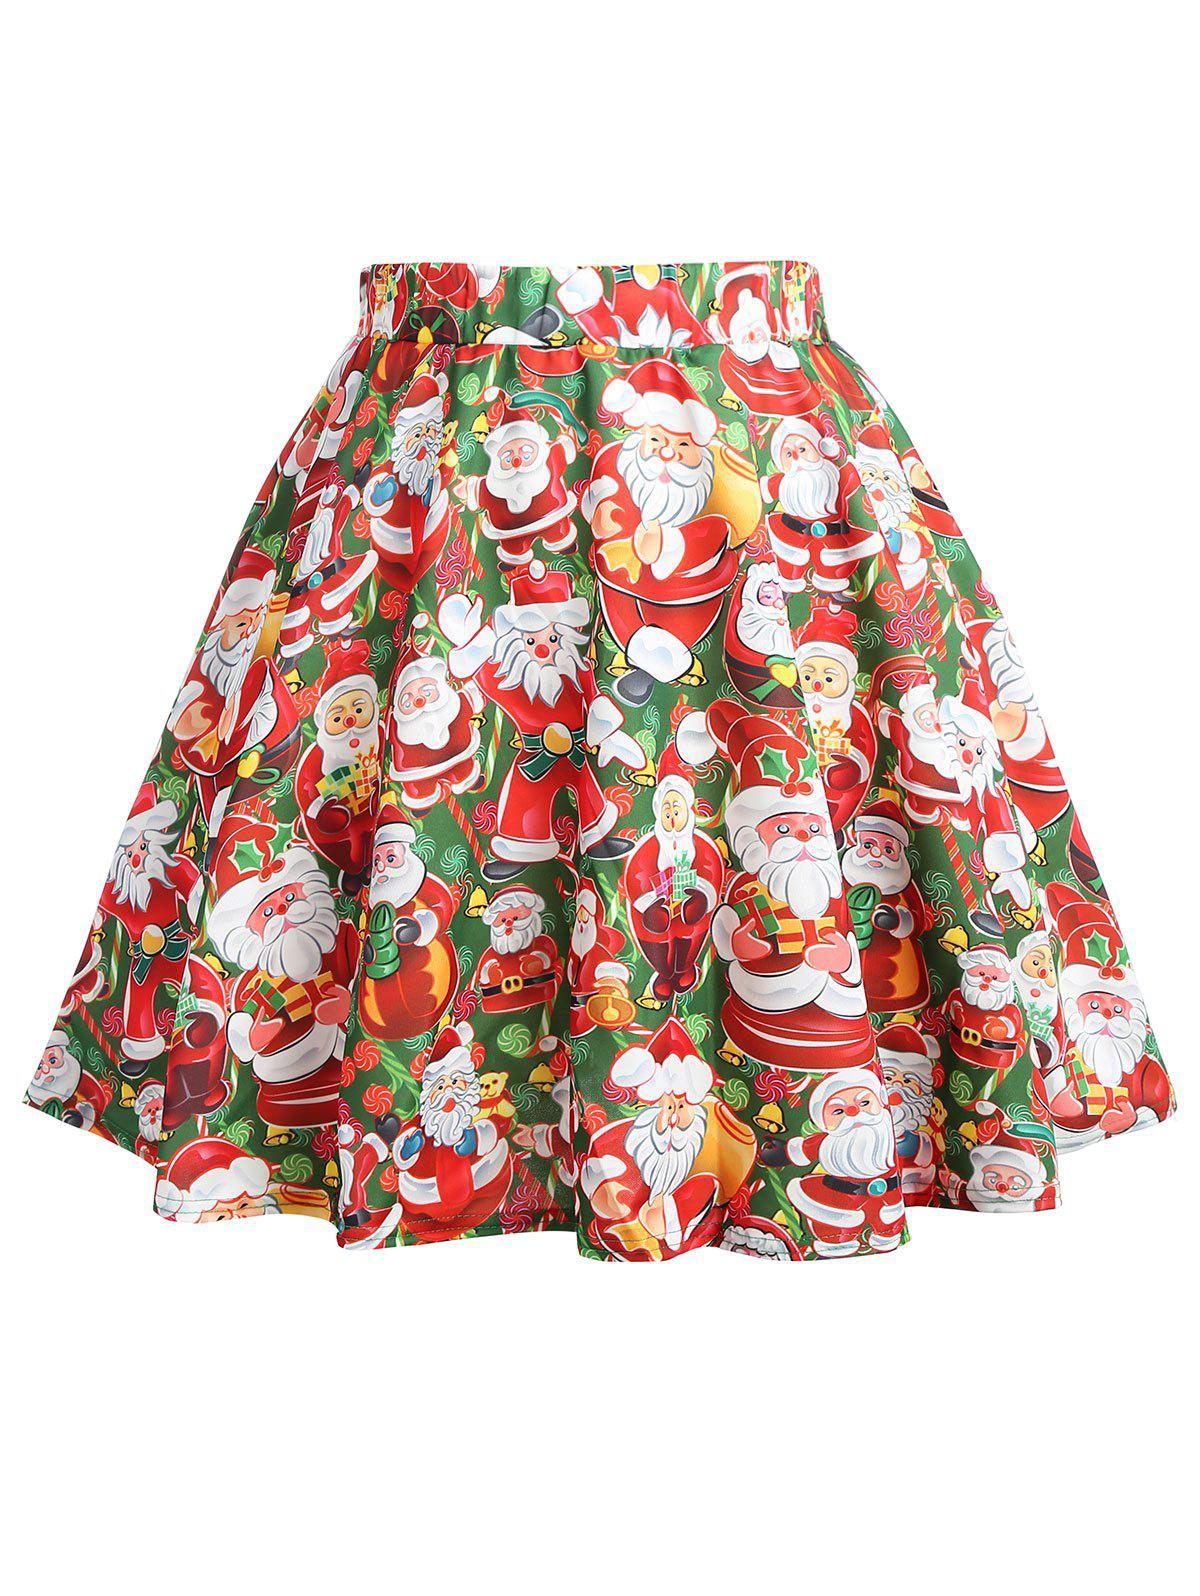 Plus Size Christmas Santa Claus Print Mini Skirt